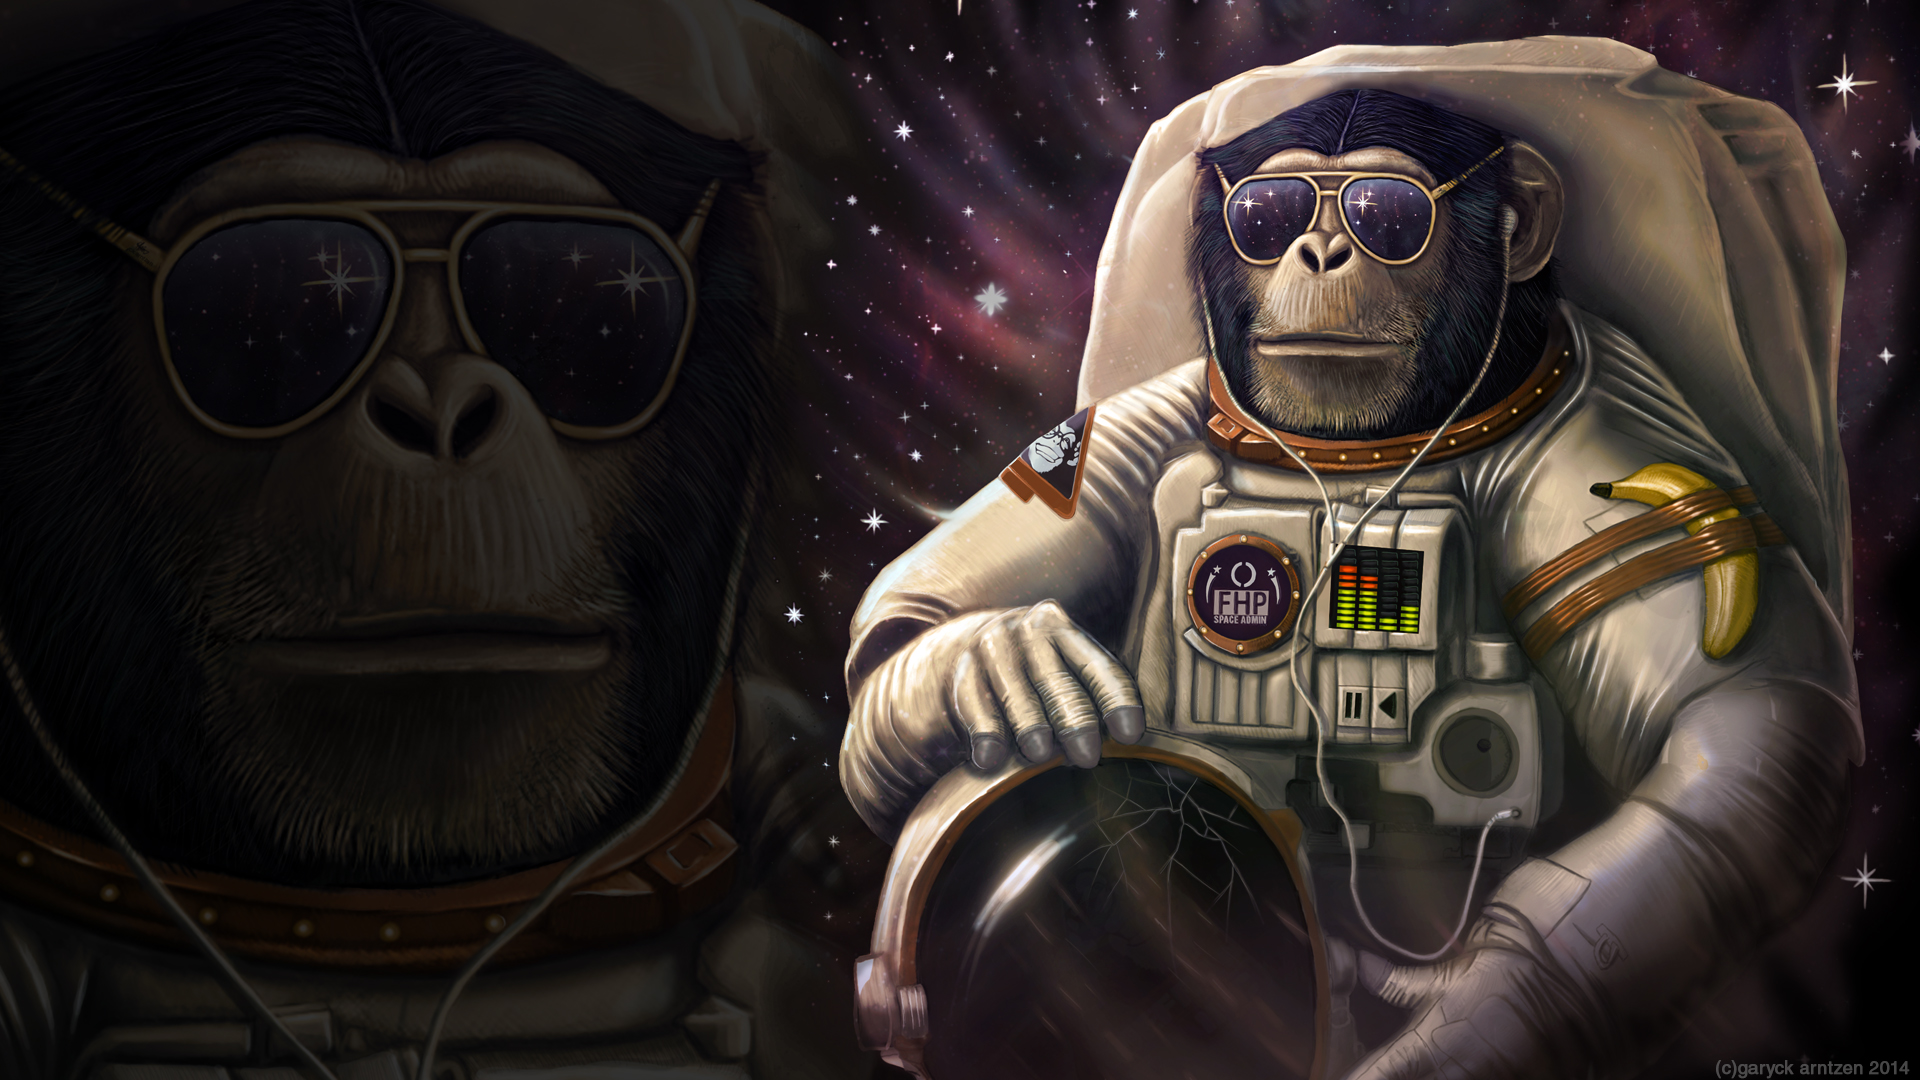 astronaut in space tumblr wallpaper - photo #42